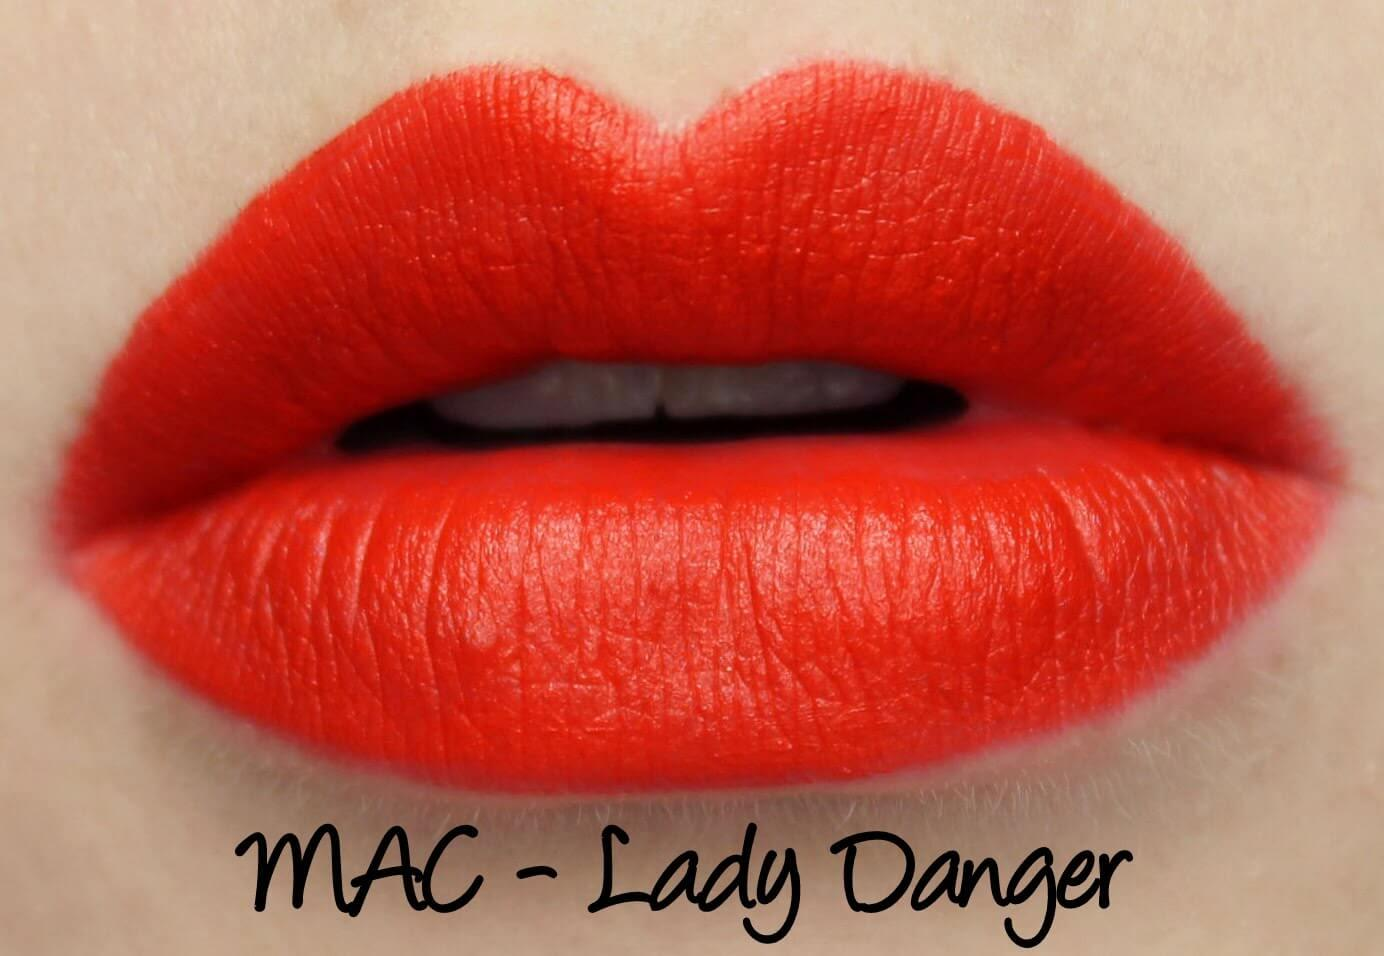 MAC_Lady_Danger_lipstick_swatch.jpg